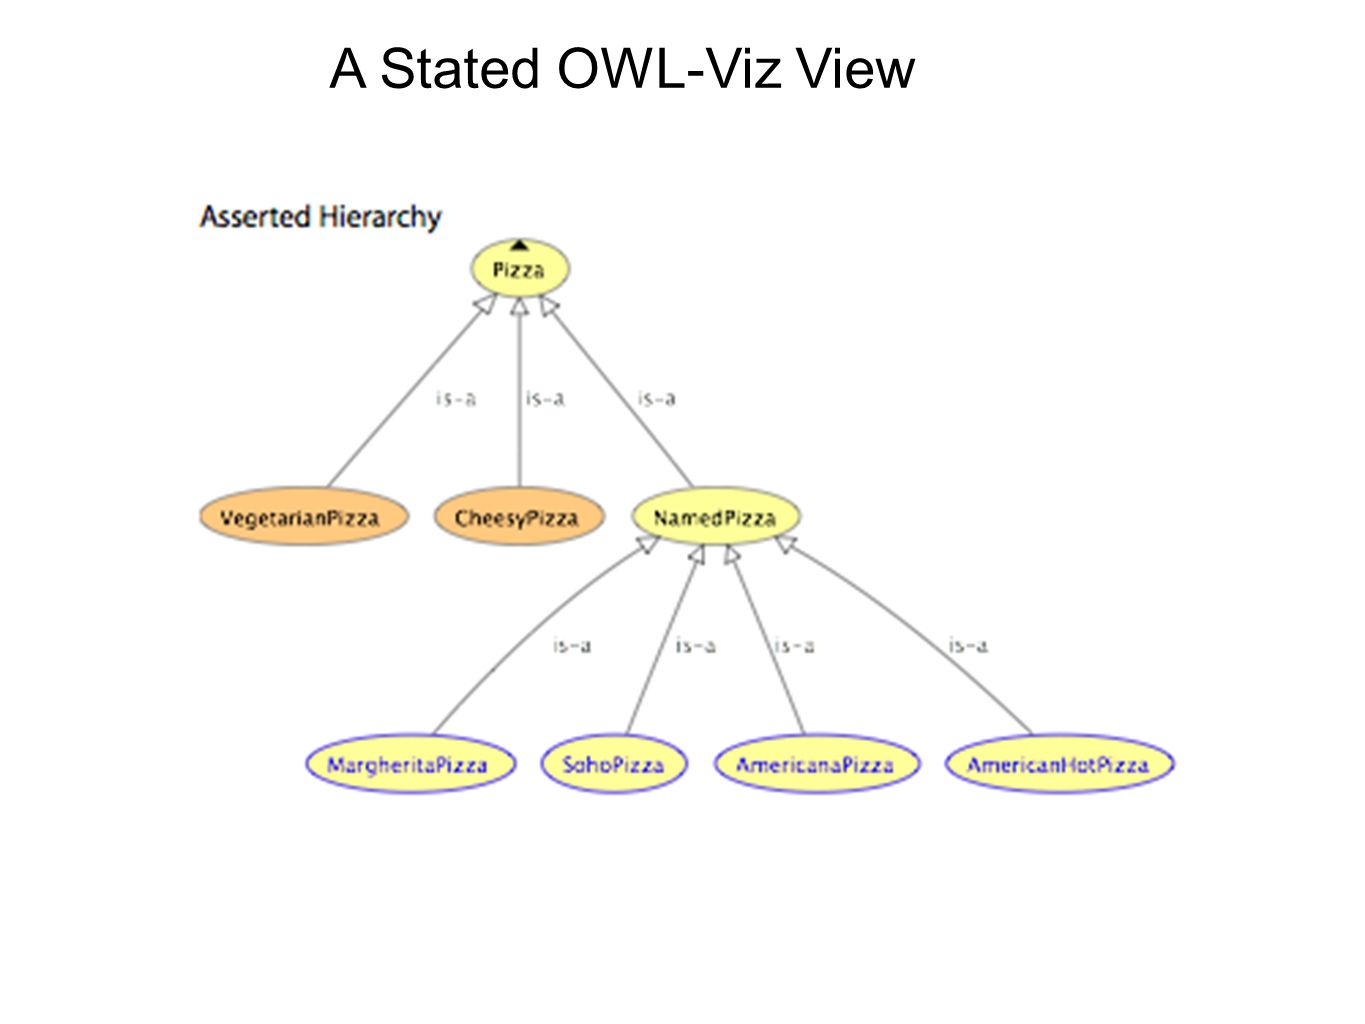 A Stated OWL-Viz View